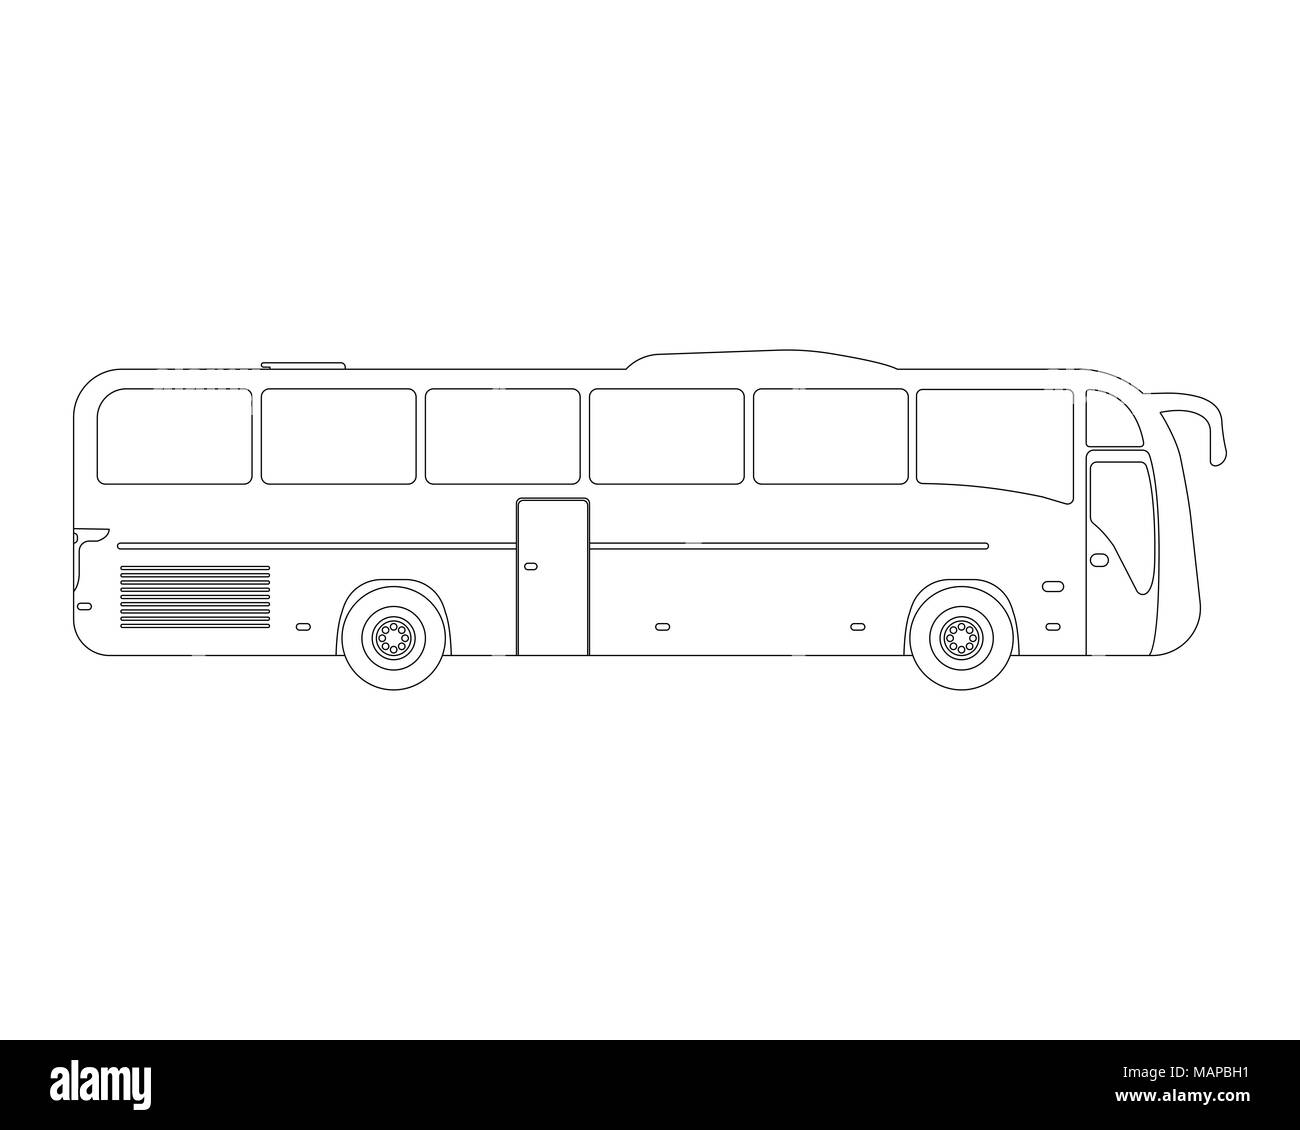 Bus flat icon and logo. Outline Vector illustration. - Stock Image